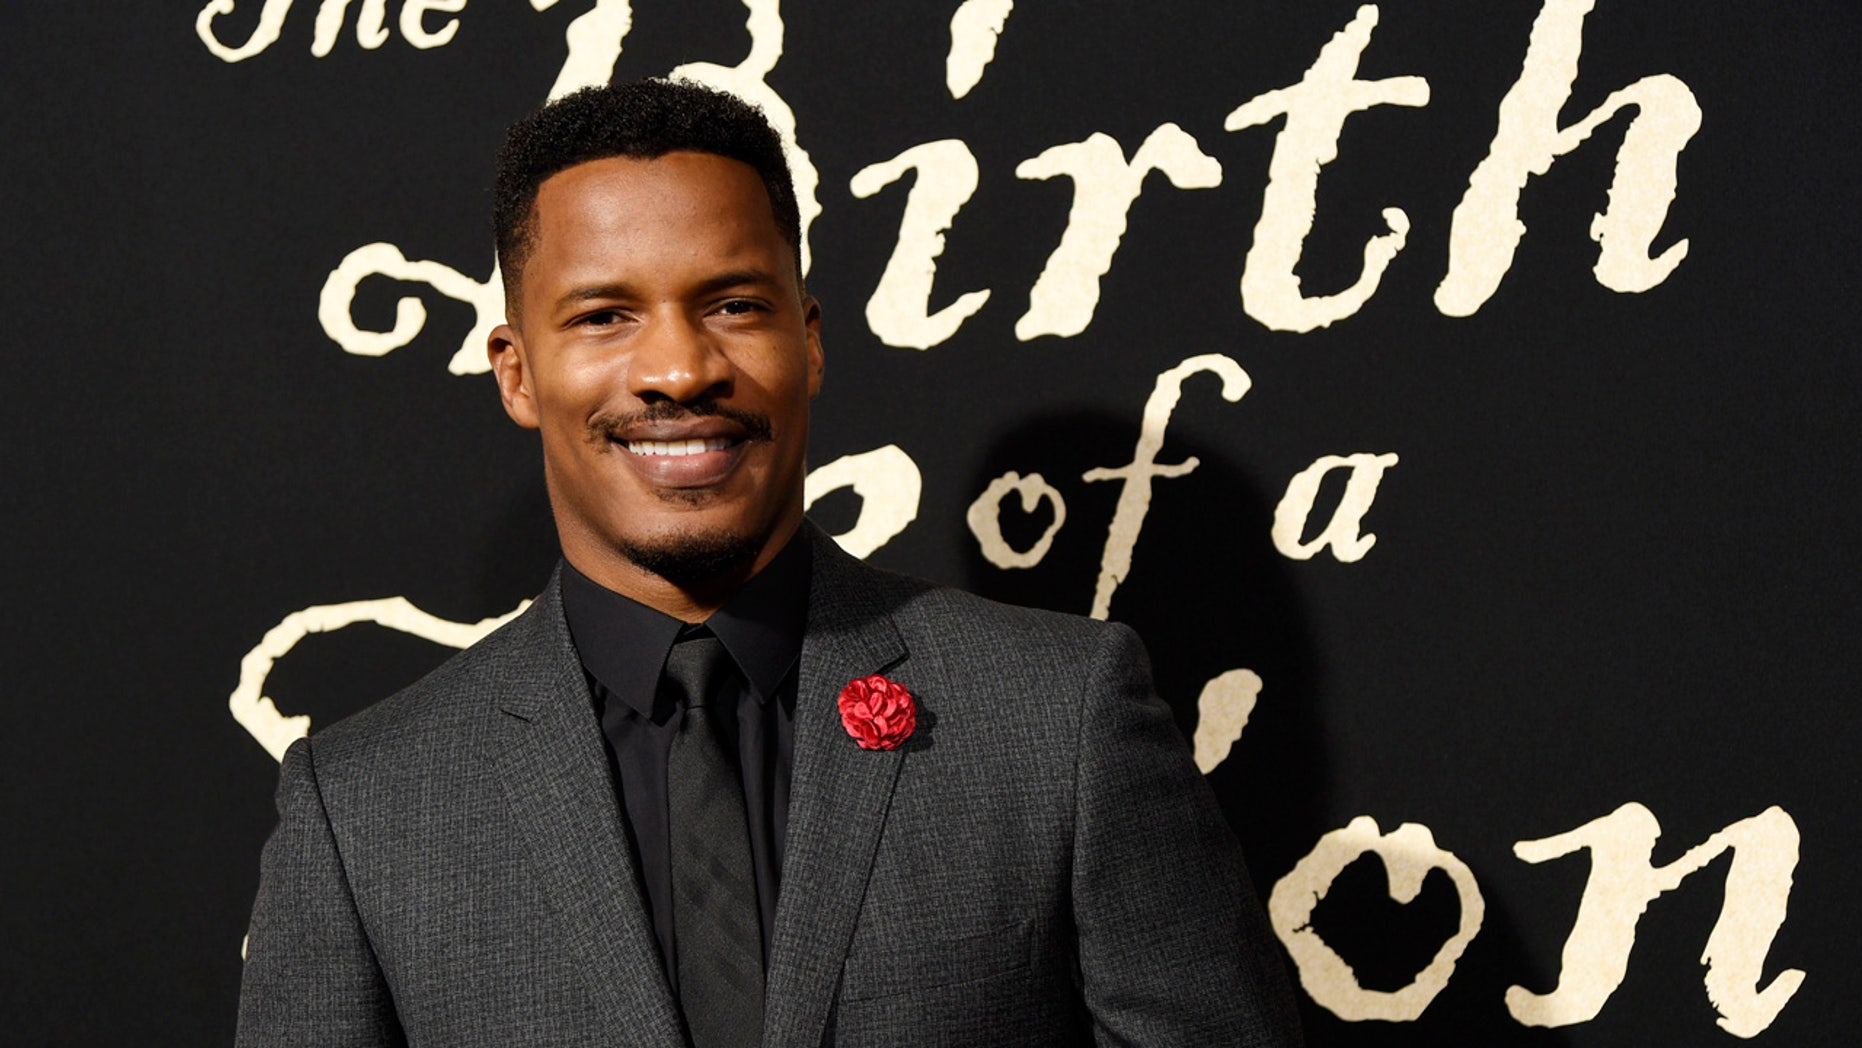 """Sept. 21, 2016: Nate Parker, the director, screenwriter and star of """"The Birth of a Nation,"""" poses at the premiere of the film in Los Angeles."""